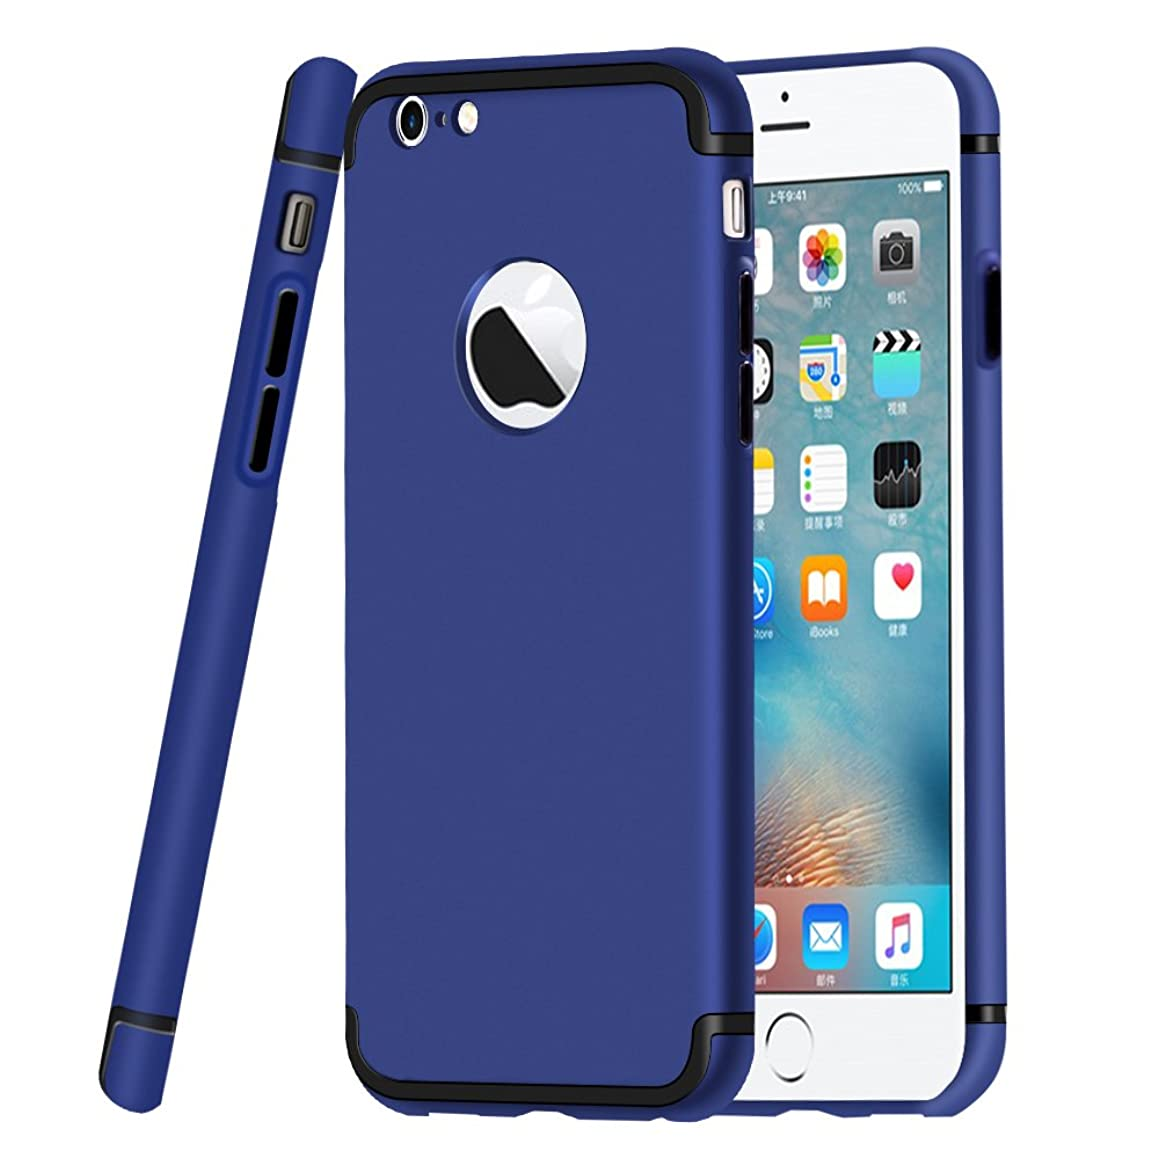 iPhone 7 Plus case, 7 Plus case, VPR Ultra Thin Hybrid Cover Anti-Scratch Fingerprint Shockproof Resist Impact Protective Armor PC Hard Back Case Cover for Apple iPhone 7 Plus (5.5 inch) (Navy)